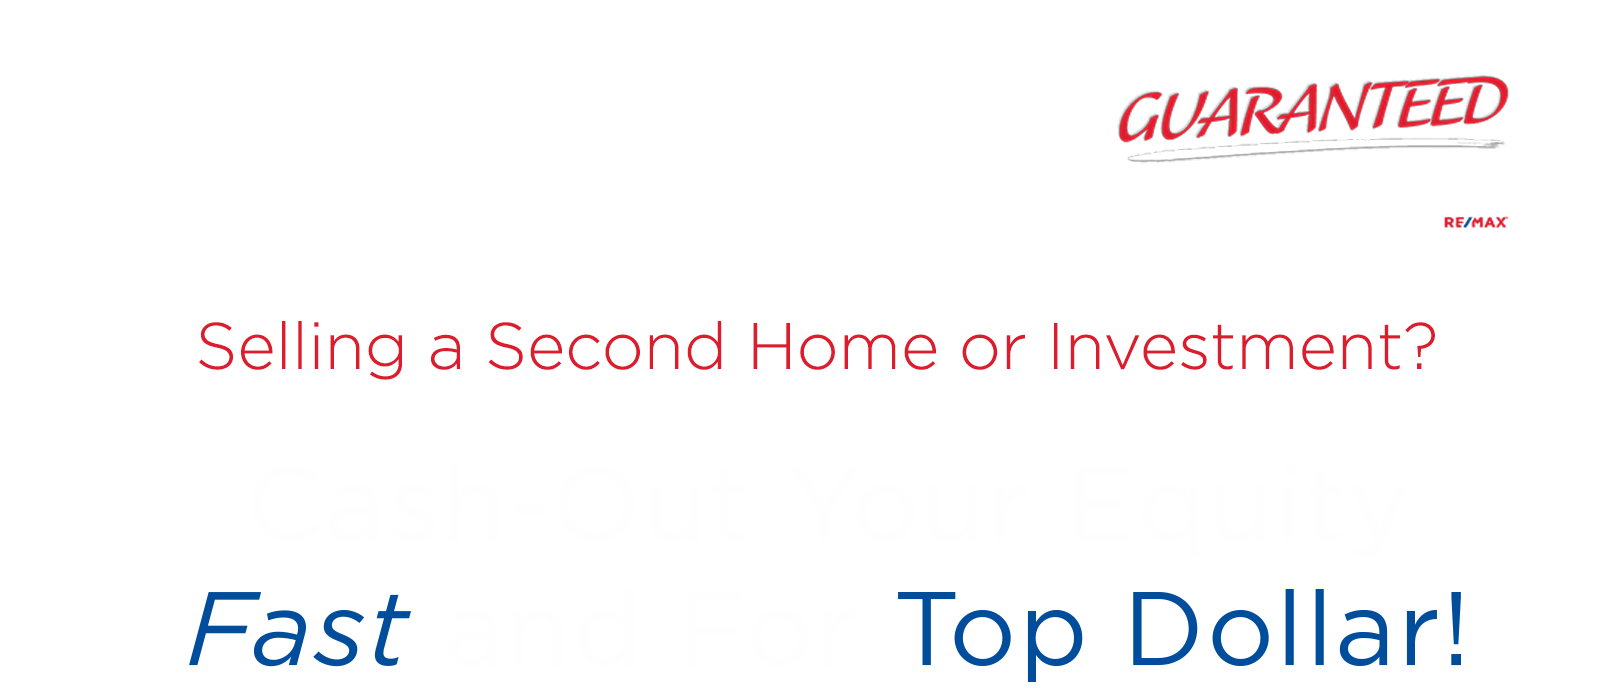 cash out your home's equity